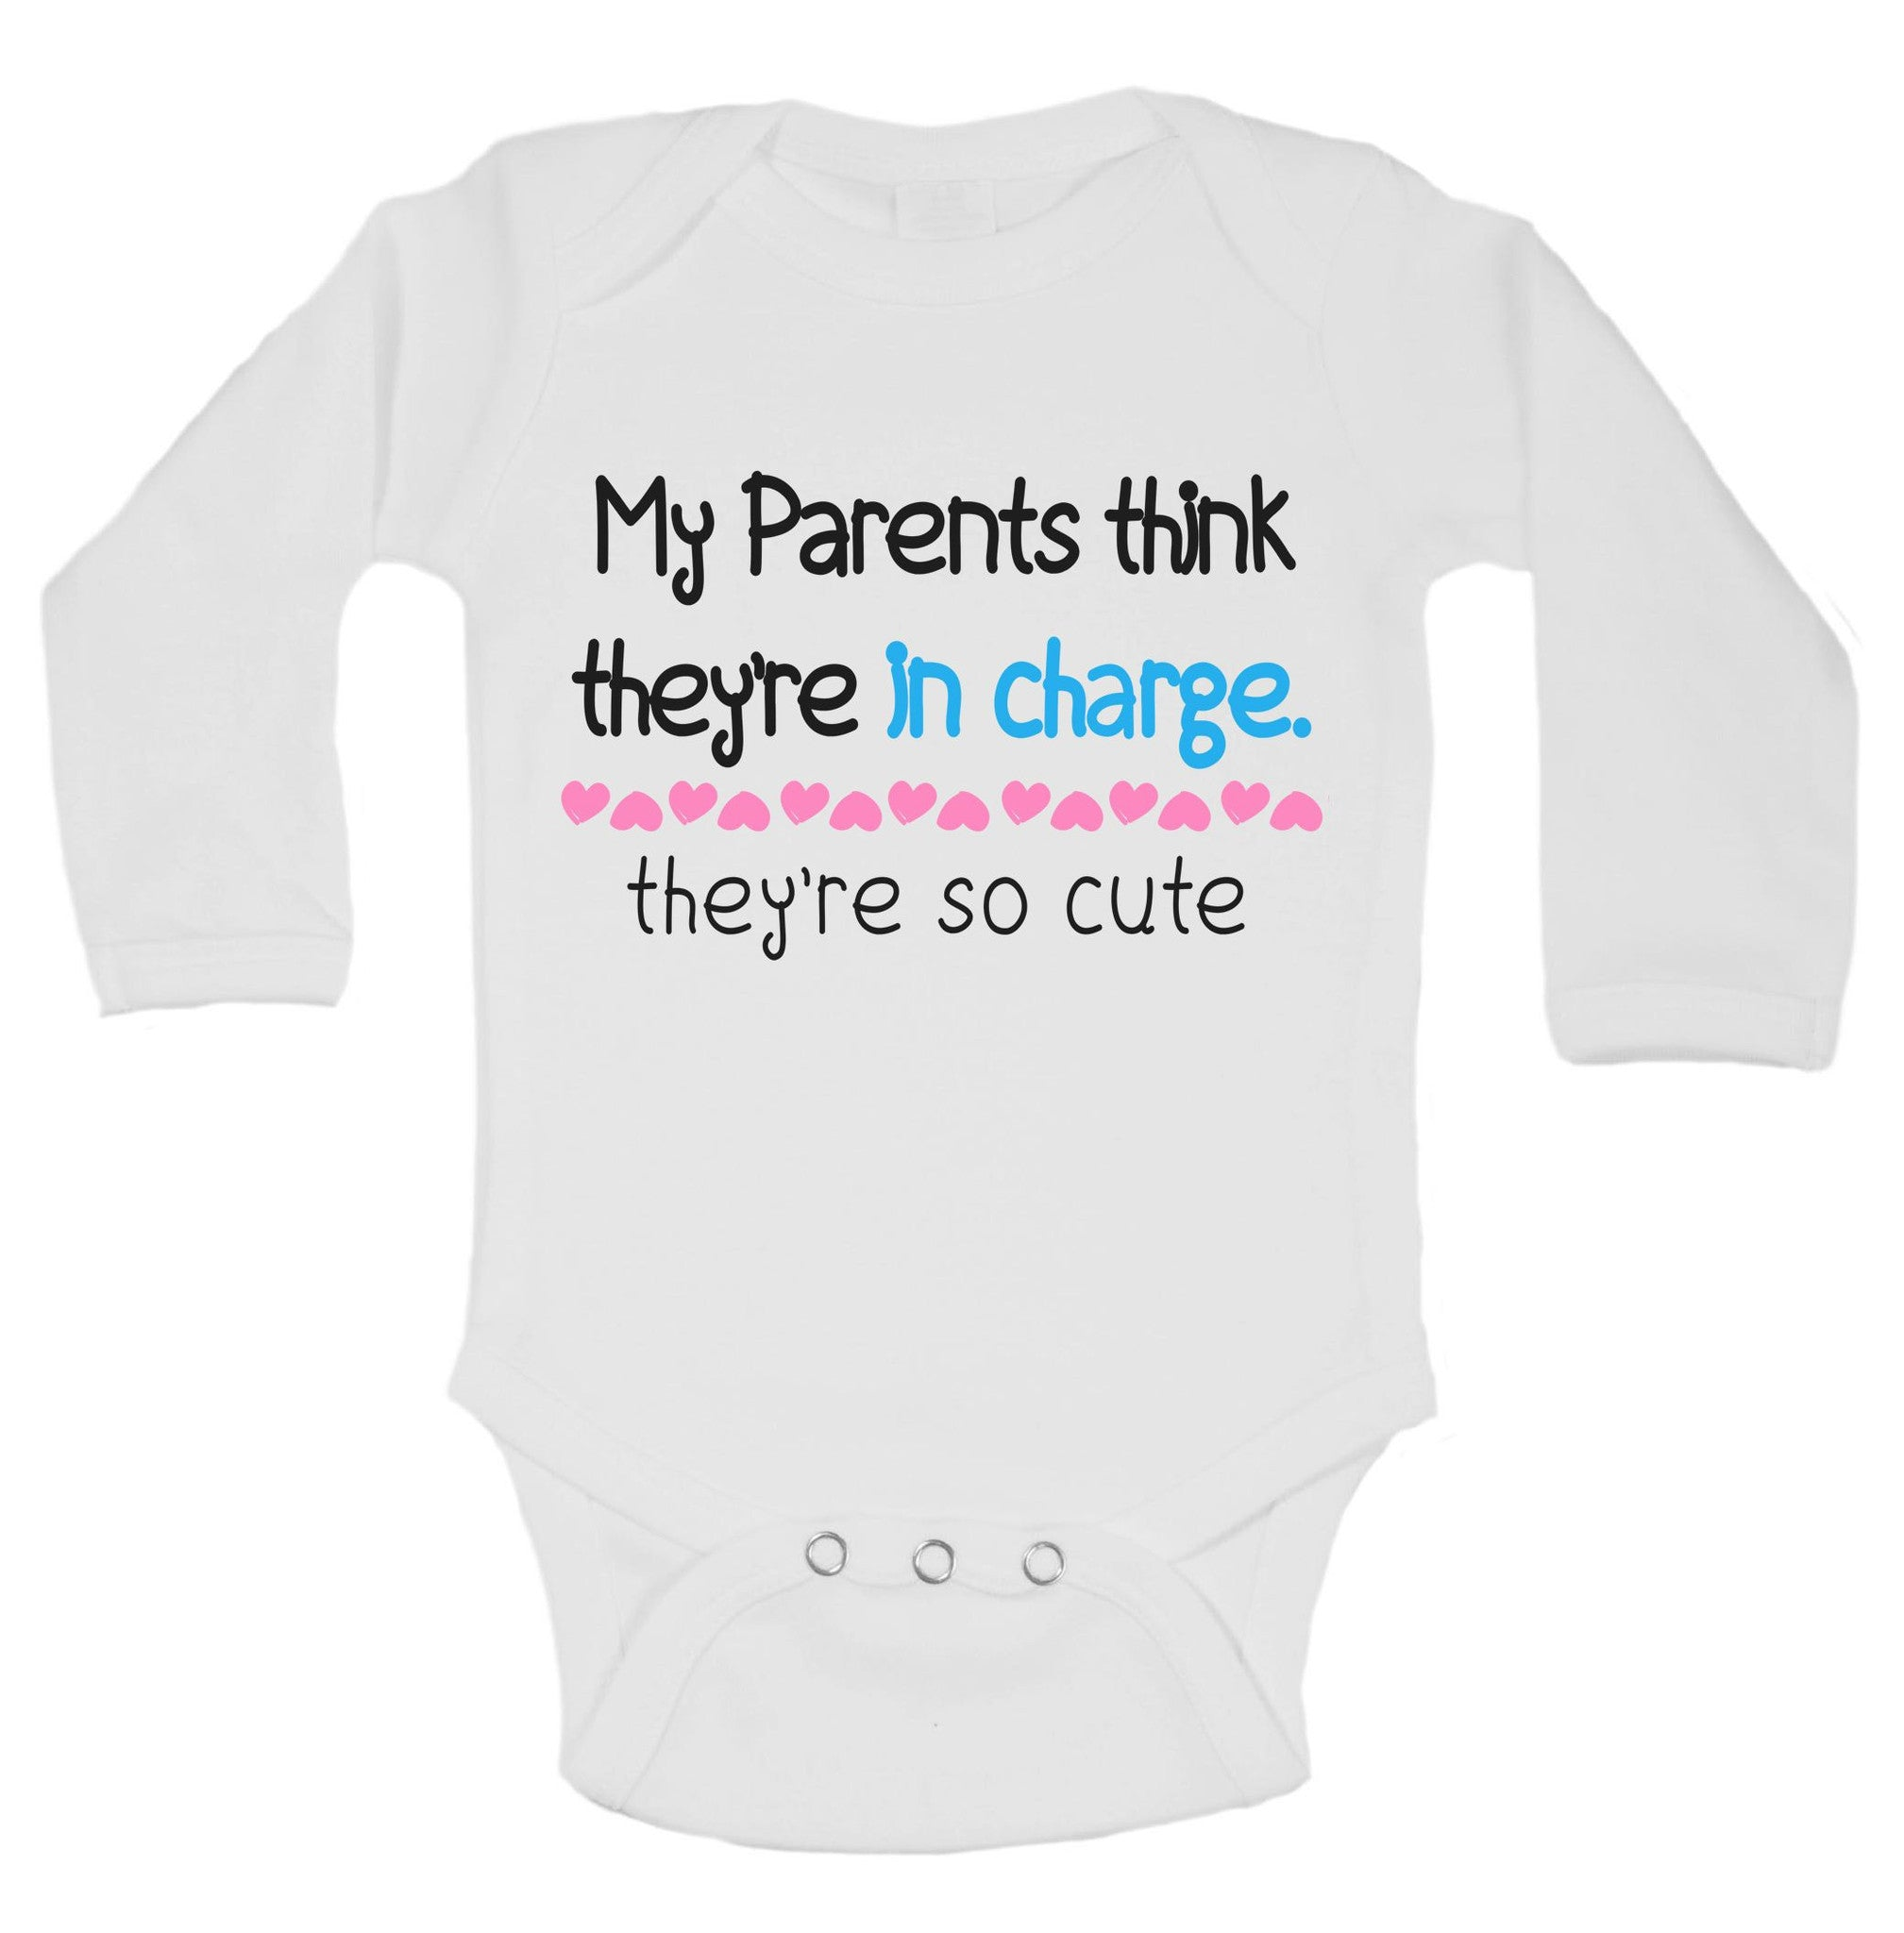 My Parents Think They'Re In Charge. They're So Cute Funny Kids Onesie - B153 - Funny Shirts Tank Tops Burnouts and Triblends  - 1